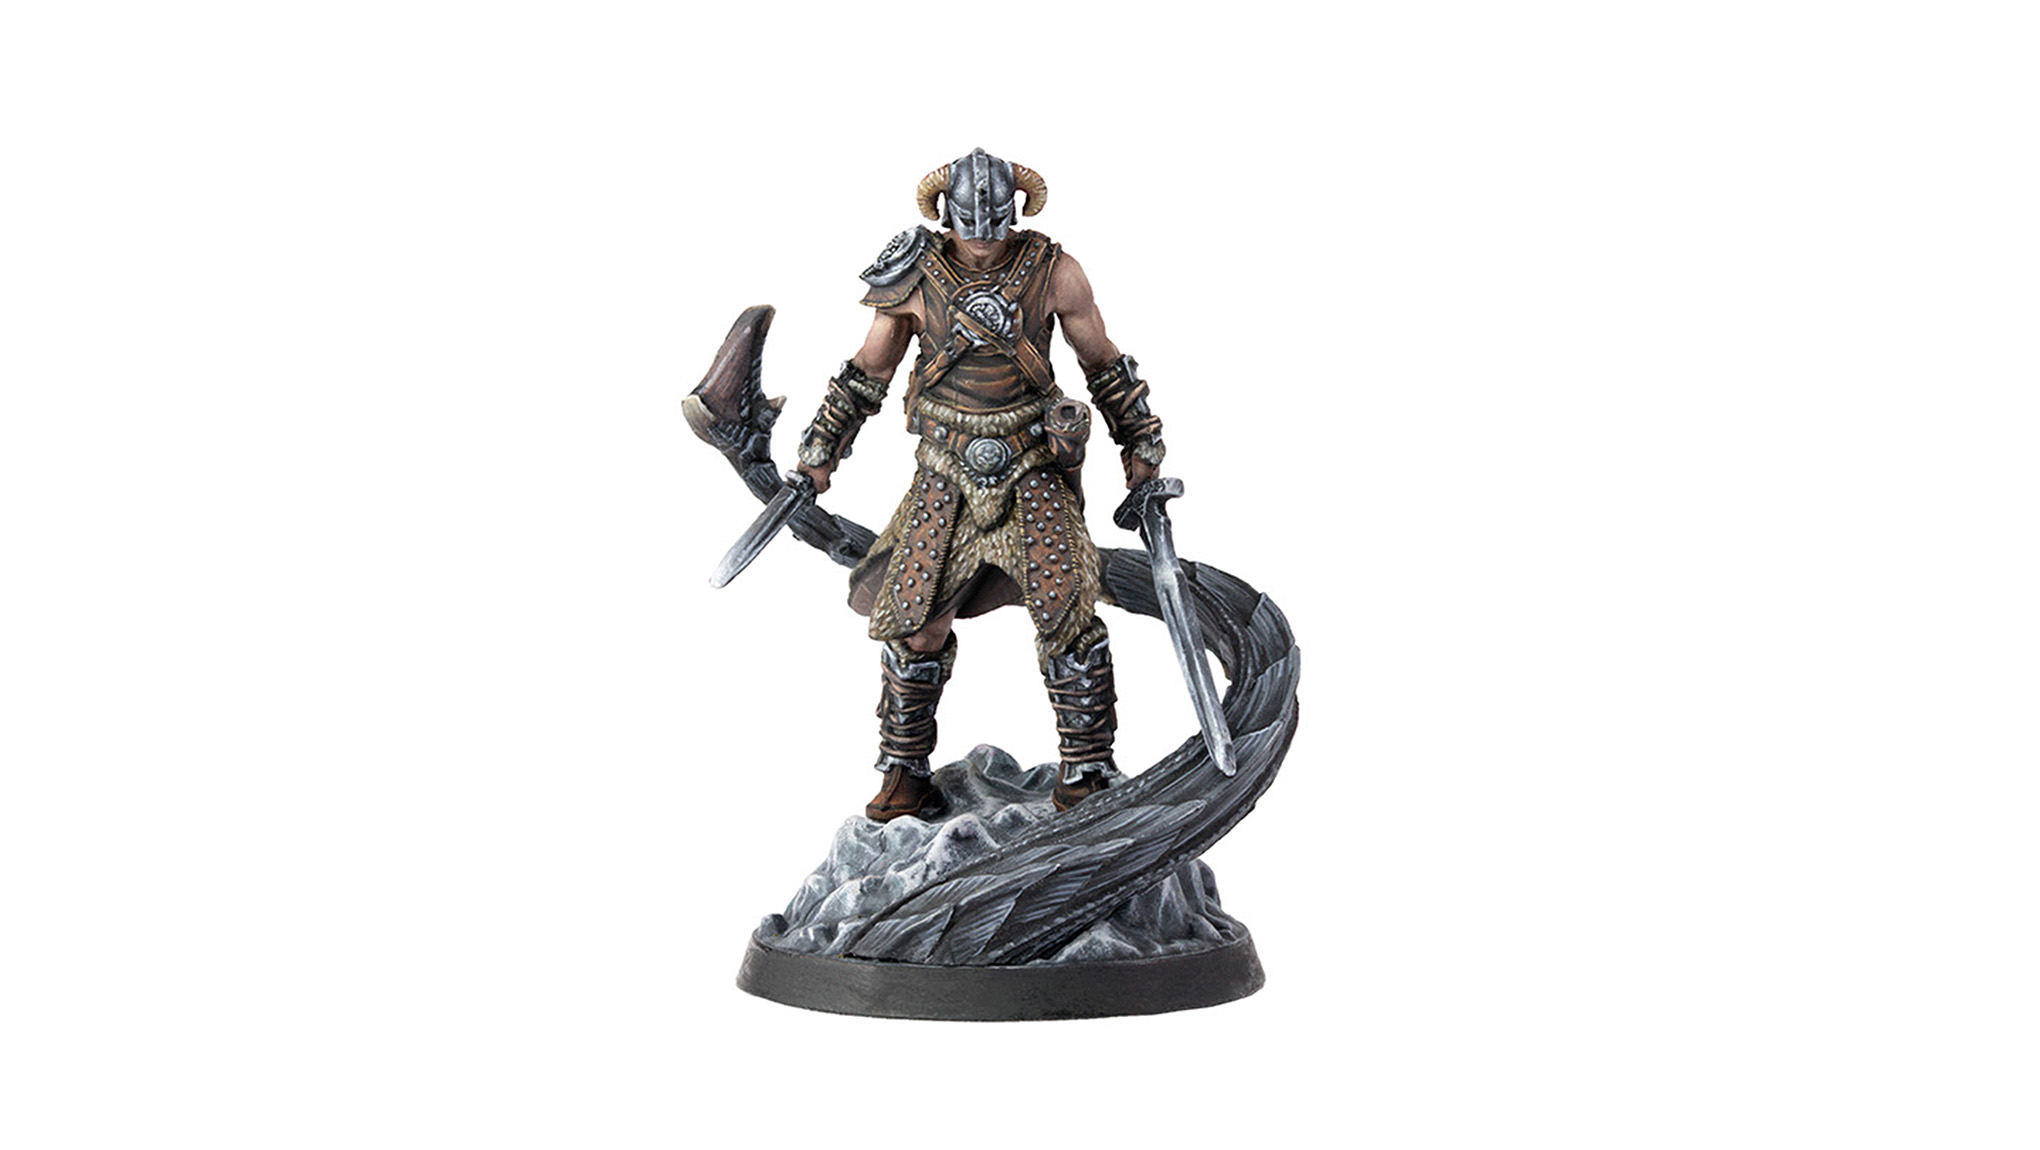 Elder Scrolls miniatures game announced, first wave set in Skyrim